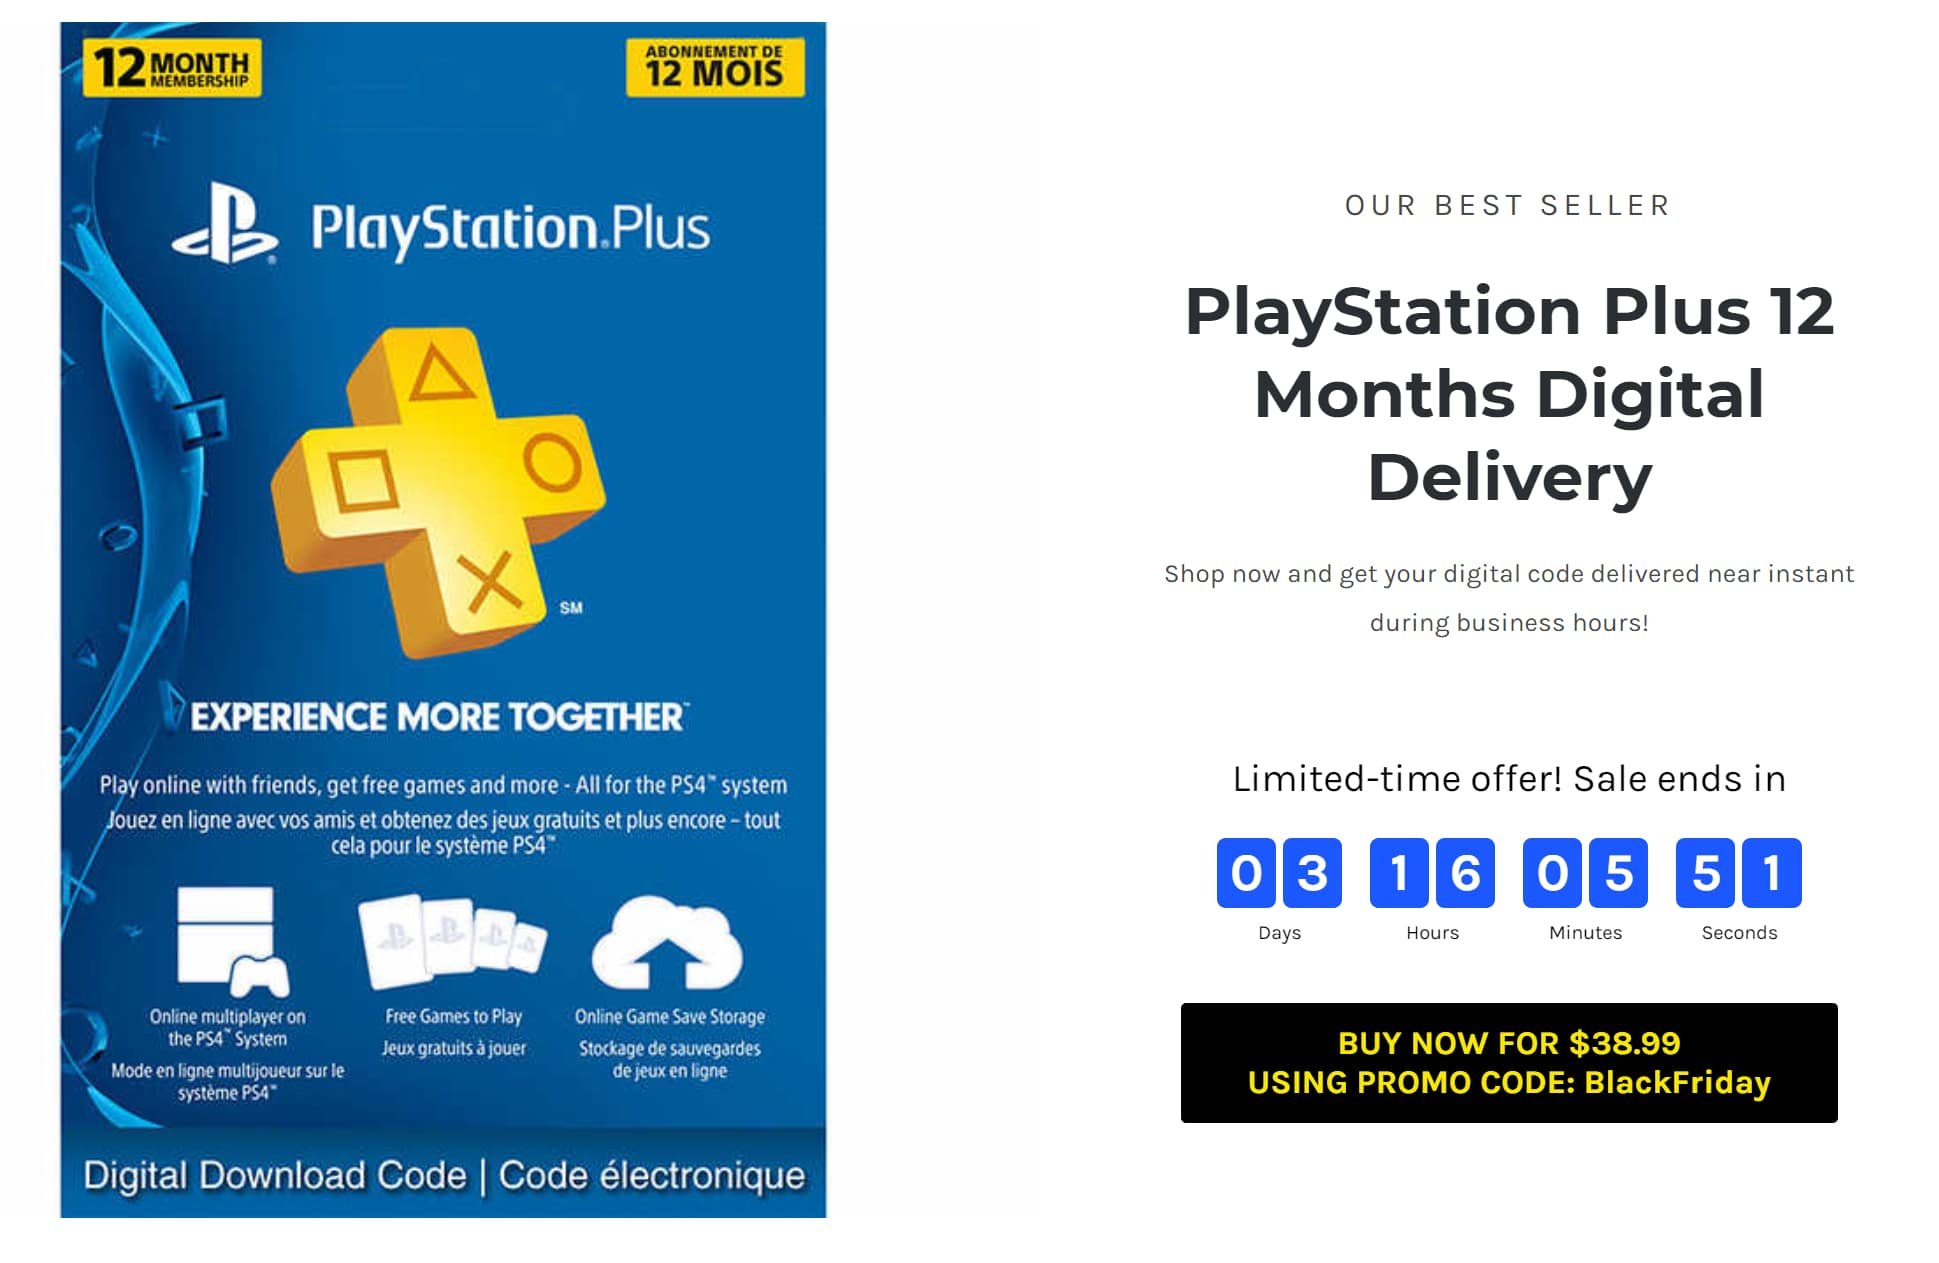 Playstation Plus 12 Month : SaugaGamers Digital Delivery $38.99